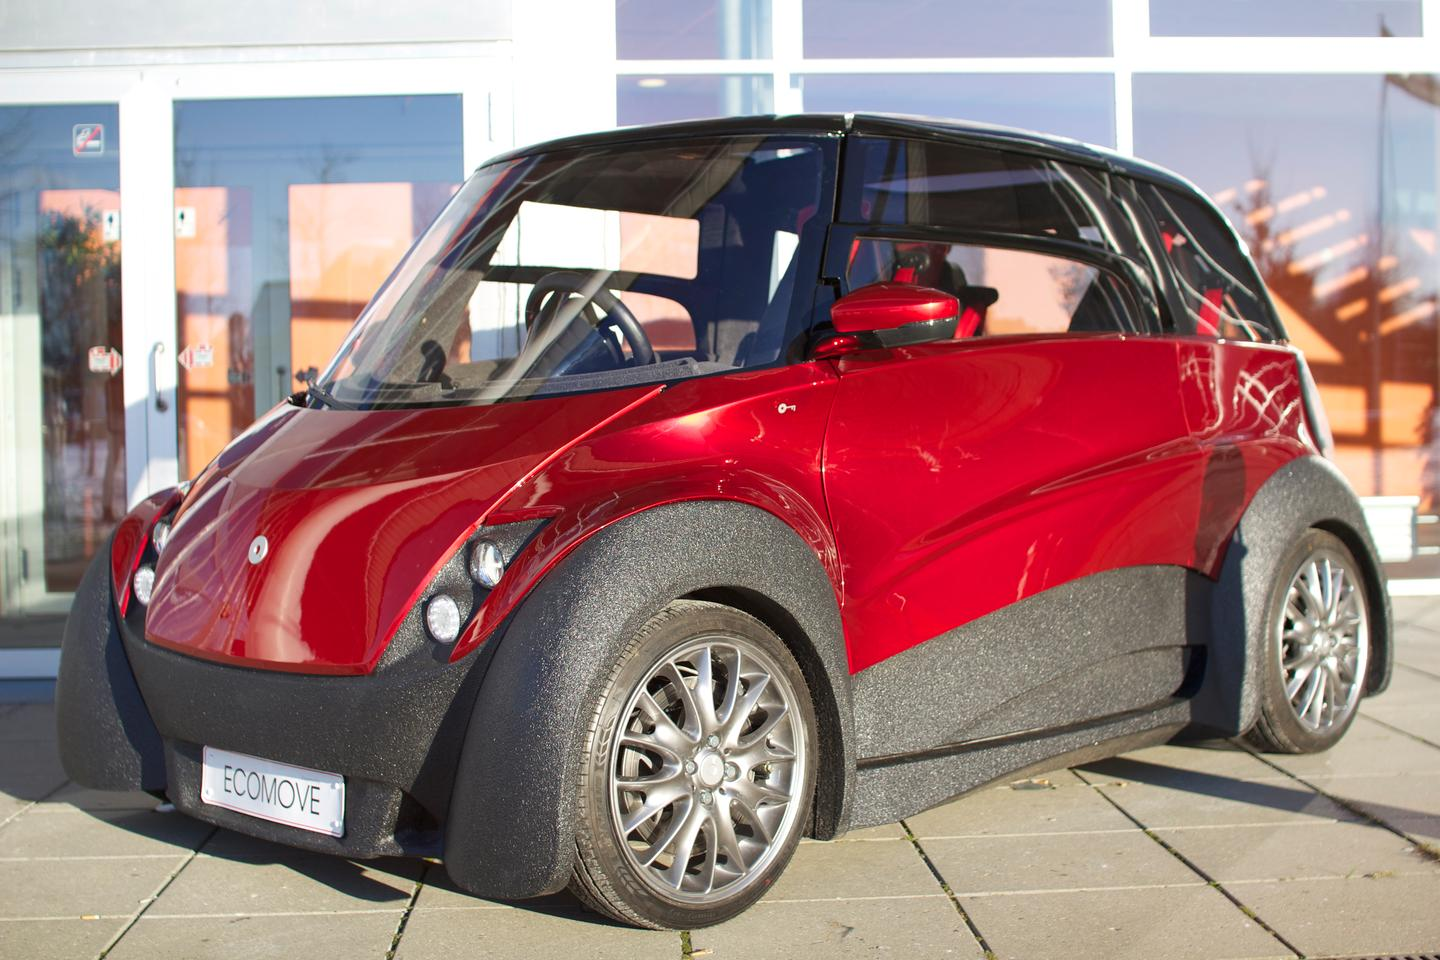 The third prototype of the QBEAK electric car now includes a basic charging structure, along with instrumentation and controls positioned in the center of the steering wheel